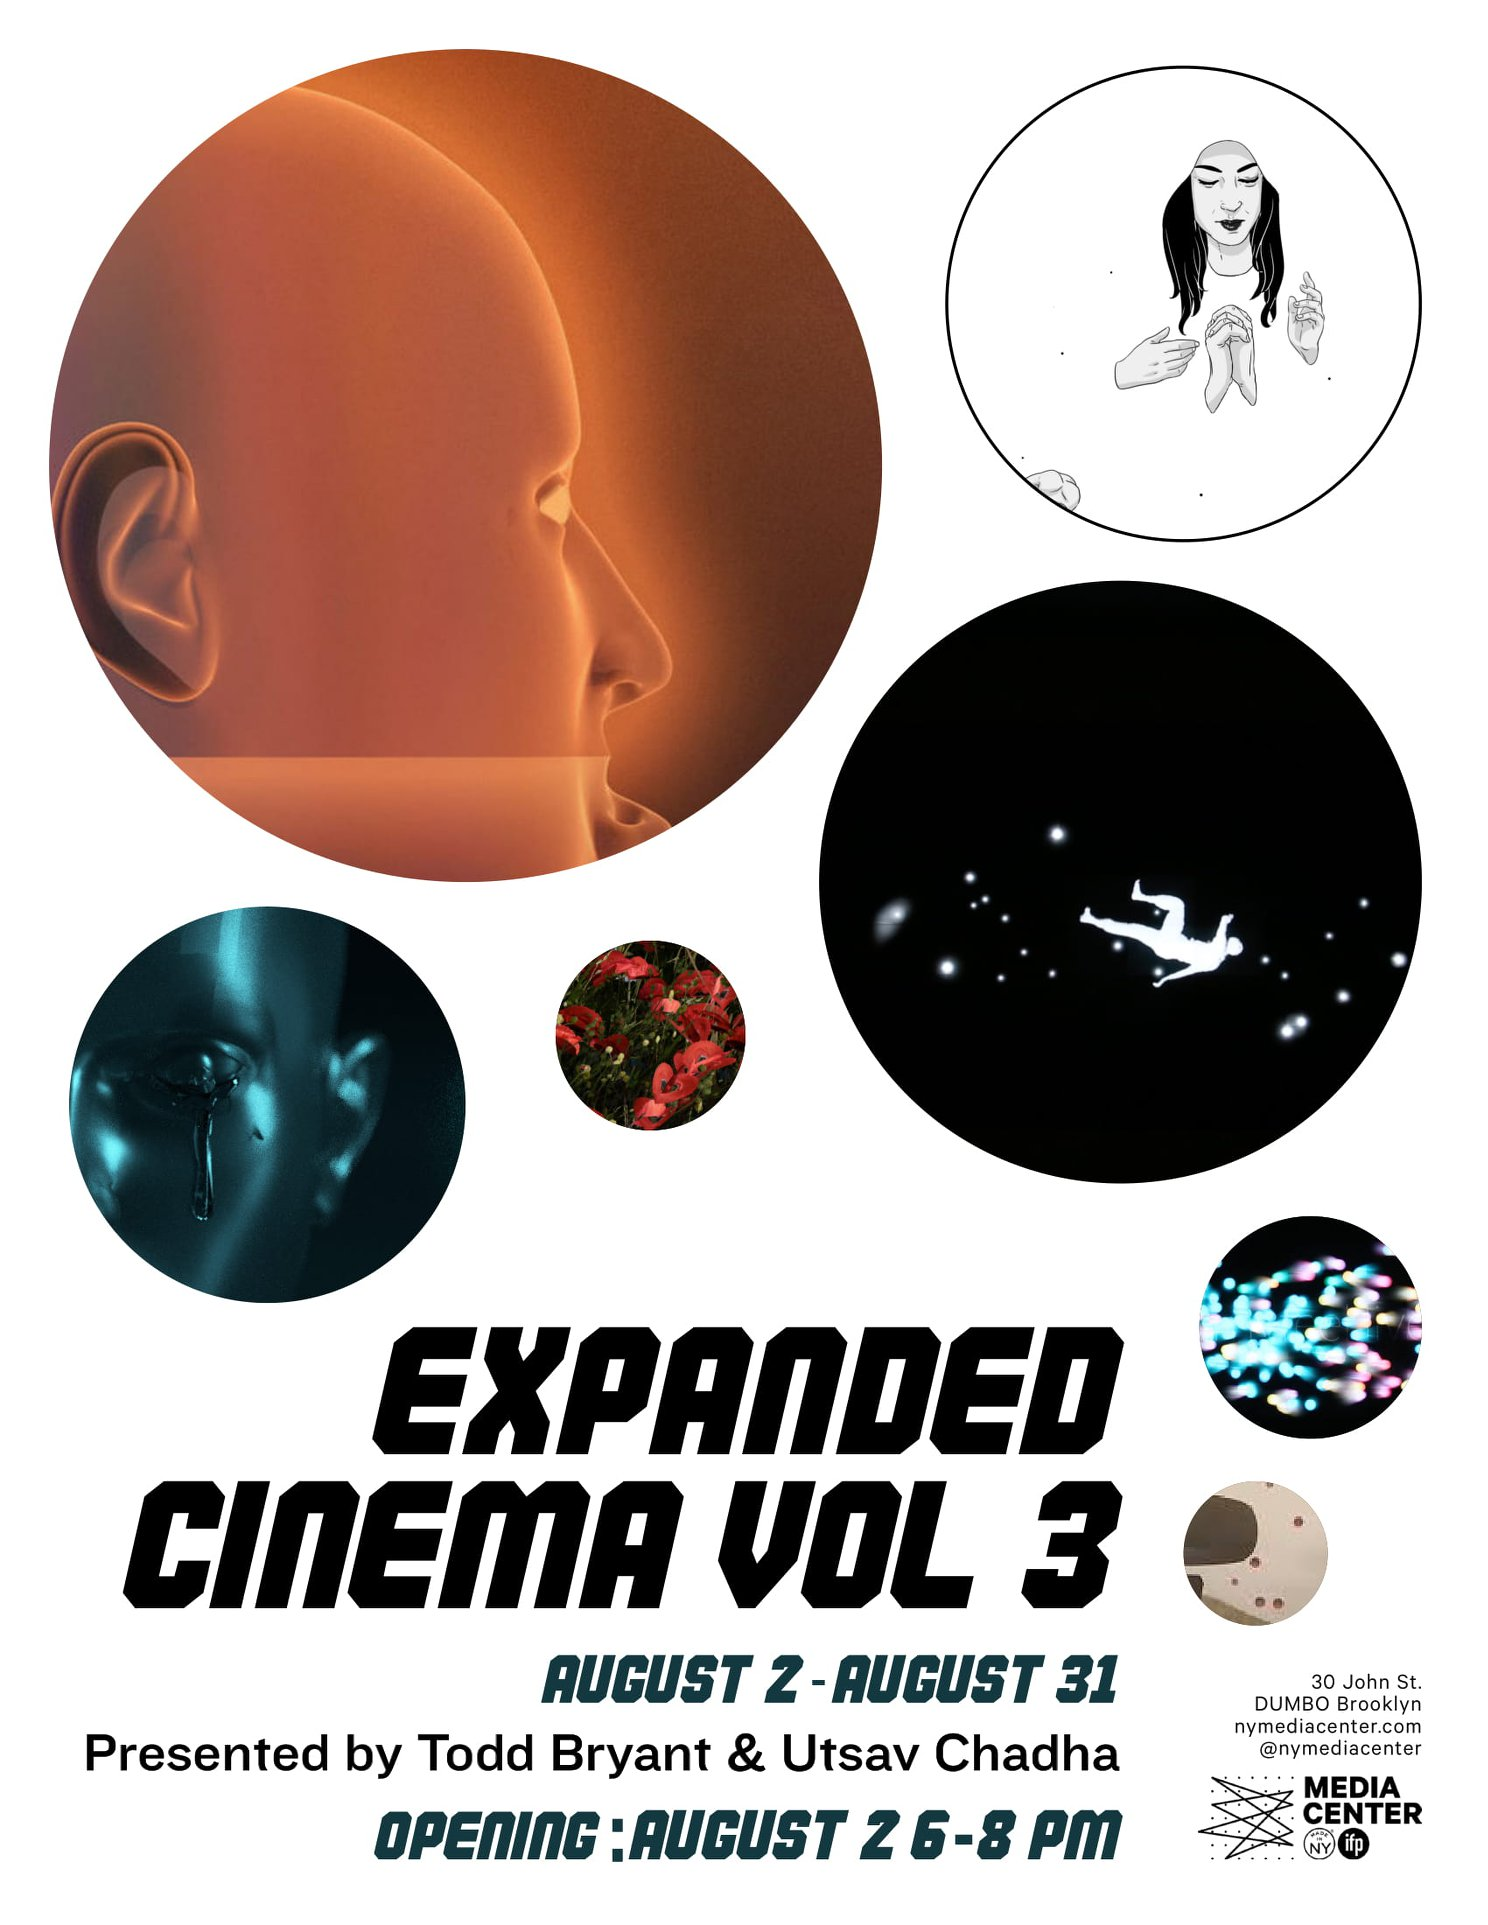 Expanded Cinema, Vol. 3 Poster